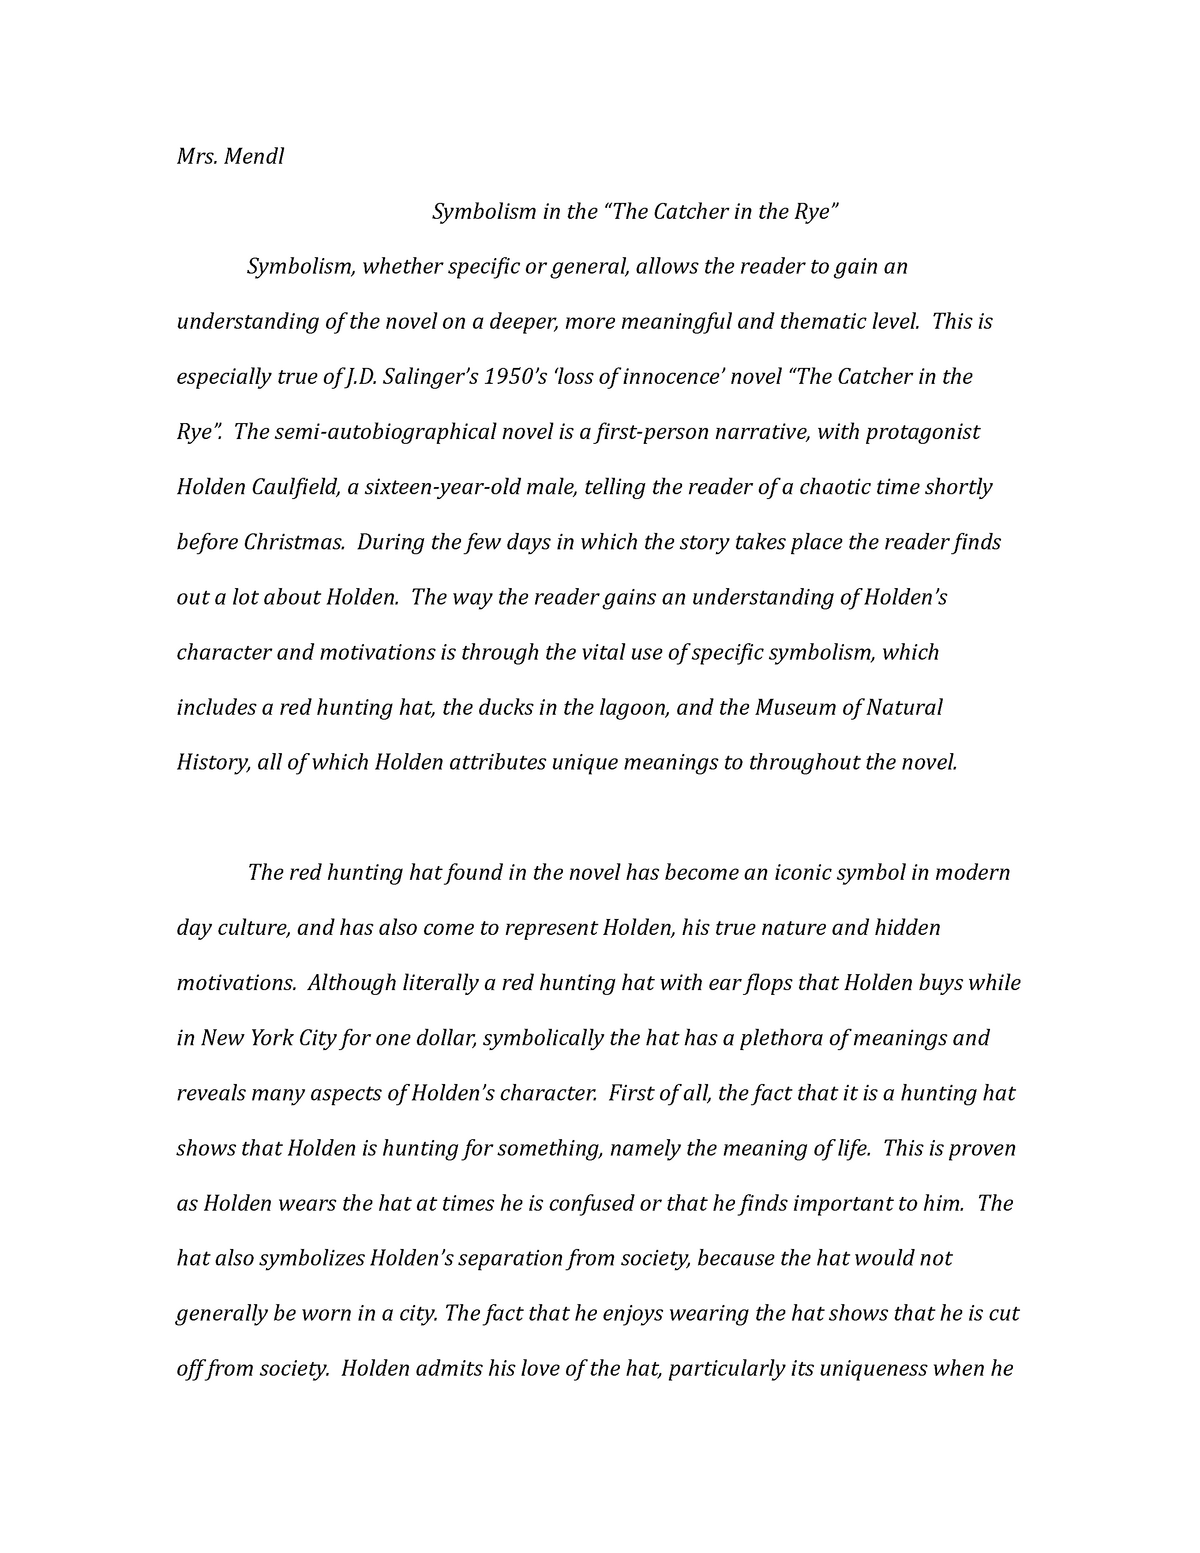 catcher in the rye essay the catcher in the rye unit guide english  symbolism in catcher in the rye en introduction to literary symbolism in  catcher in the rye